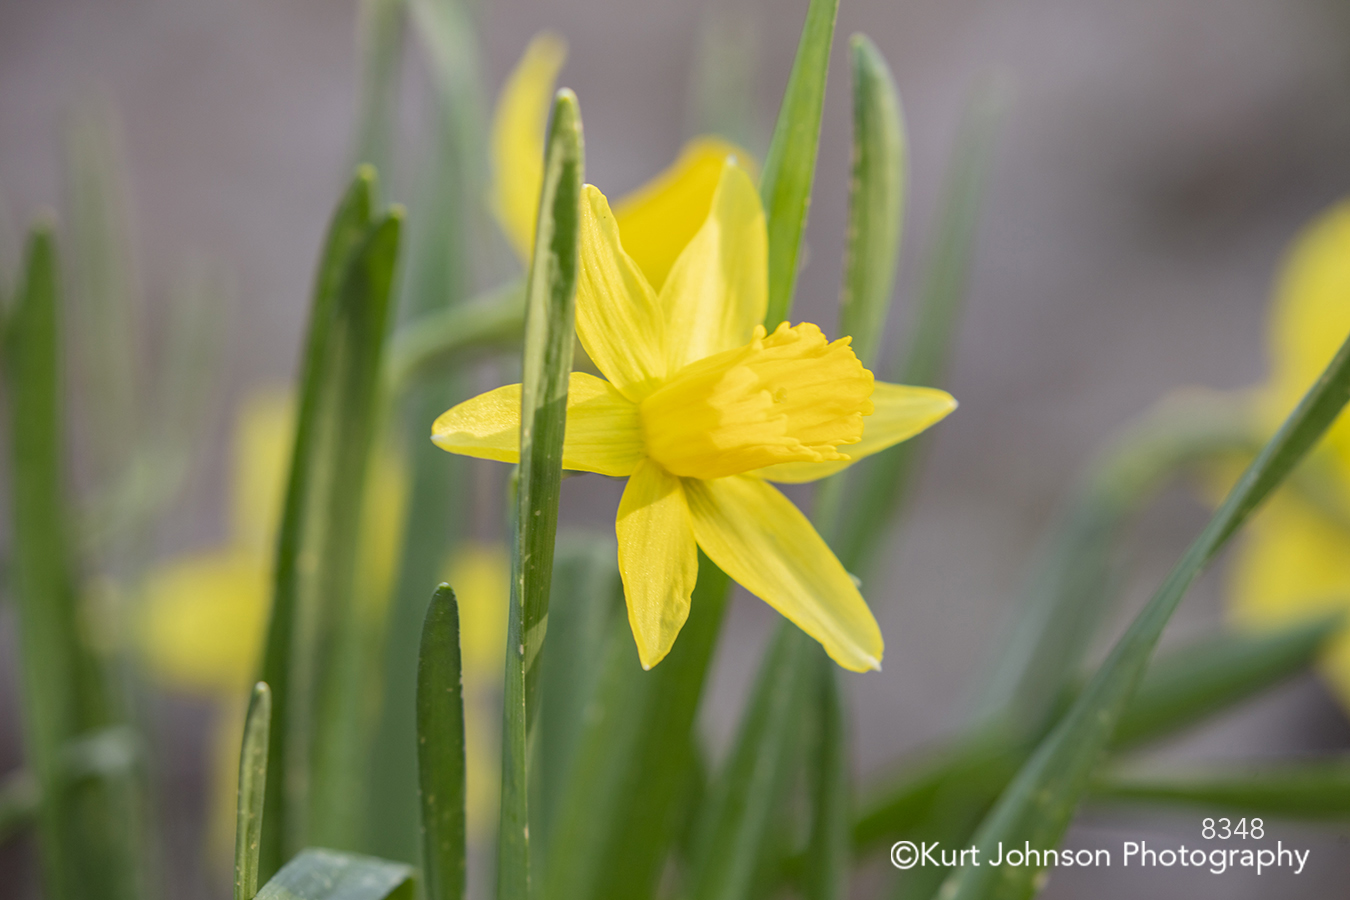 yellow spring flower daffodil green grass grasses flowers close up detail macro botanical